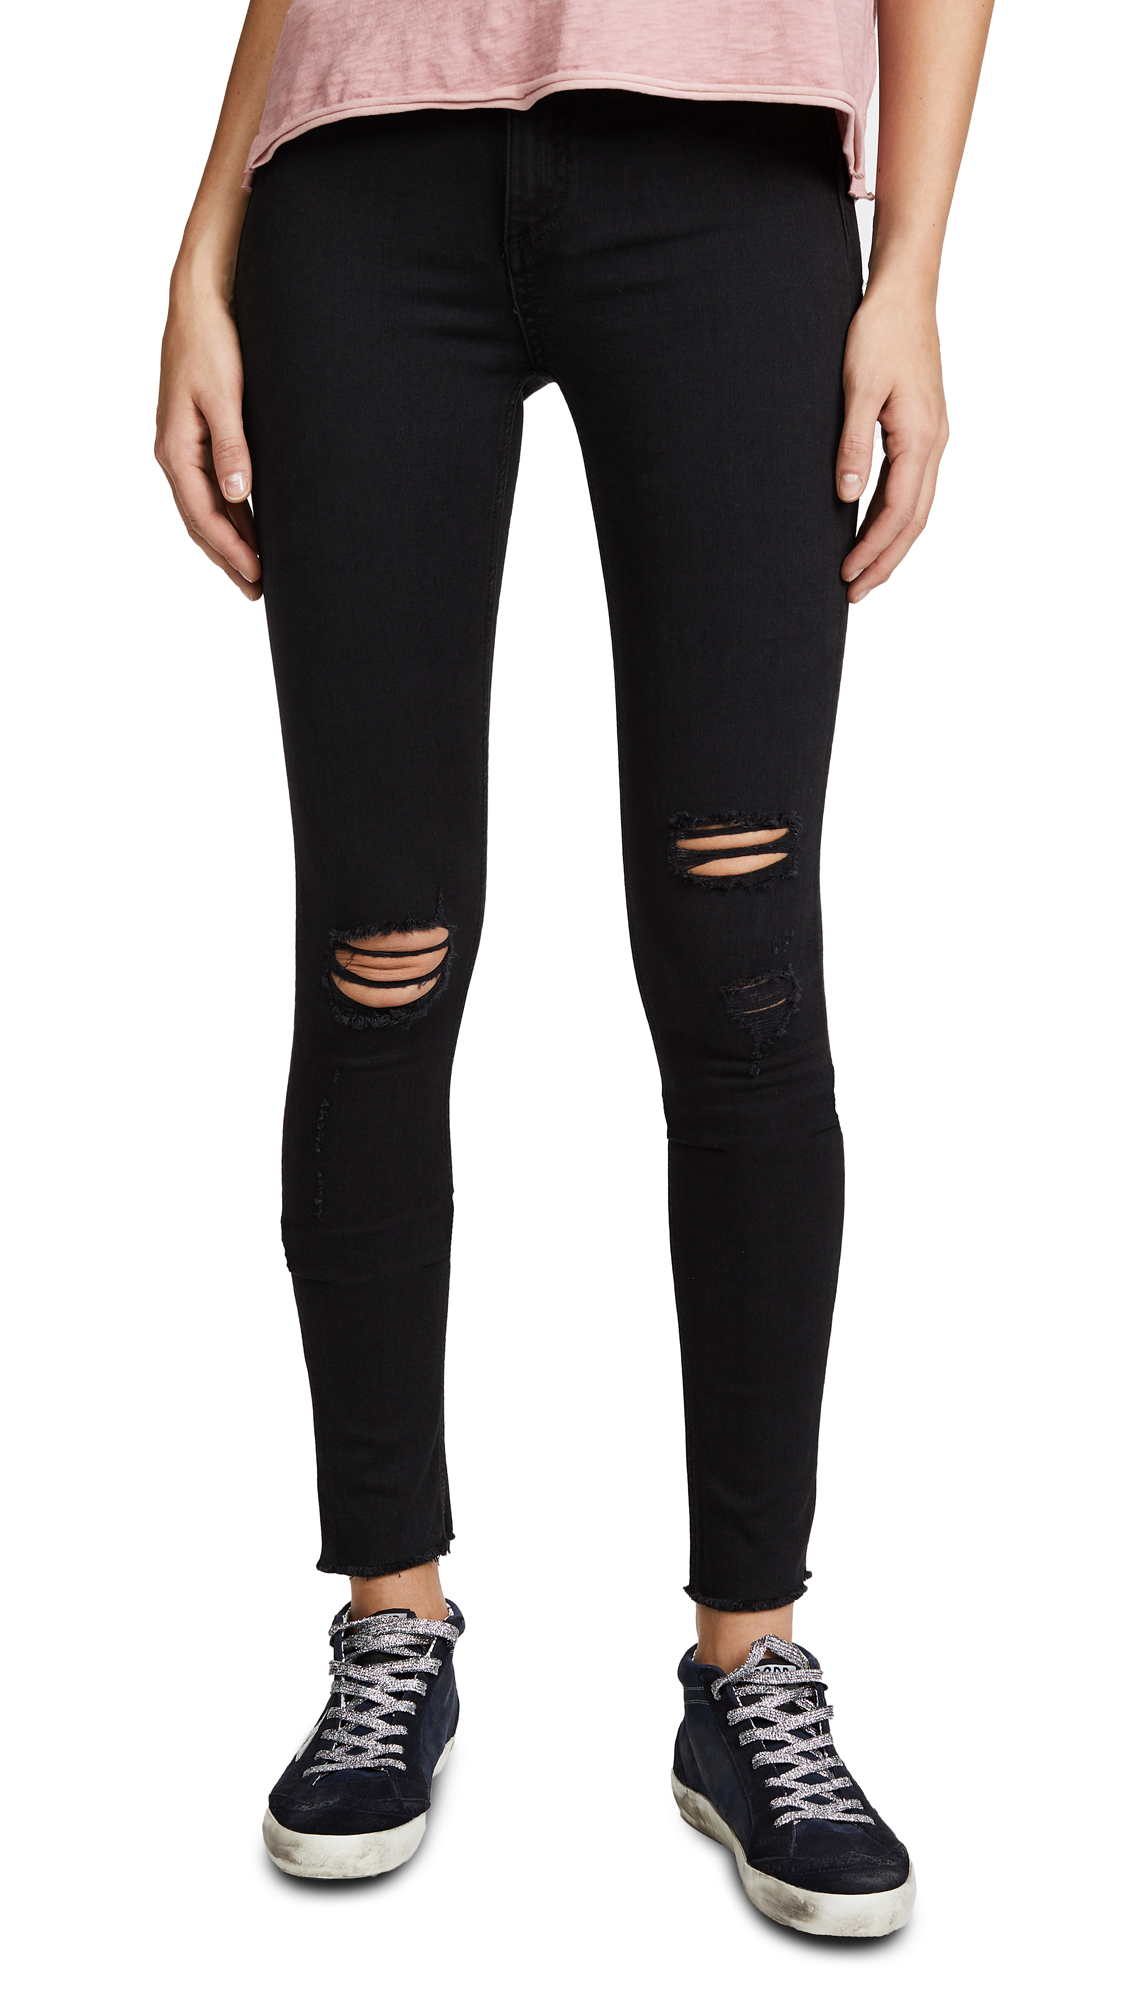 Rag & Bone/JEAN High Rise Skinny Jeans - Night With Holes